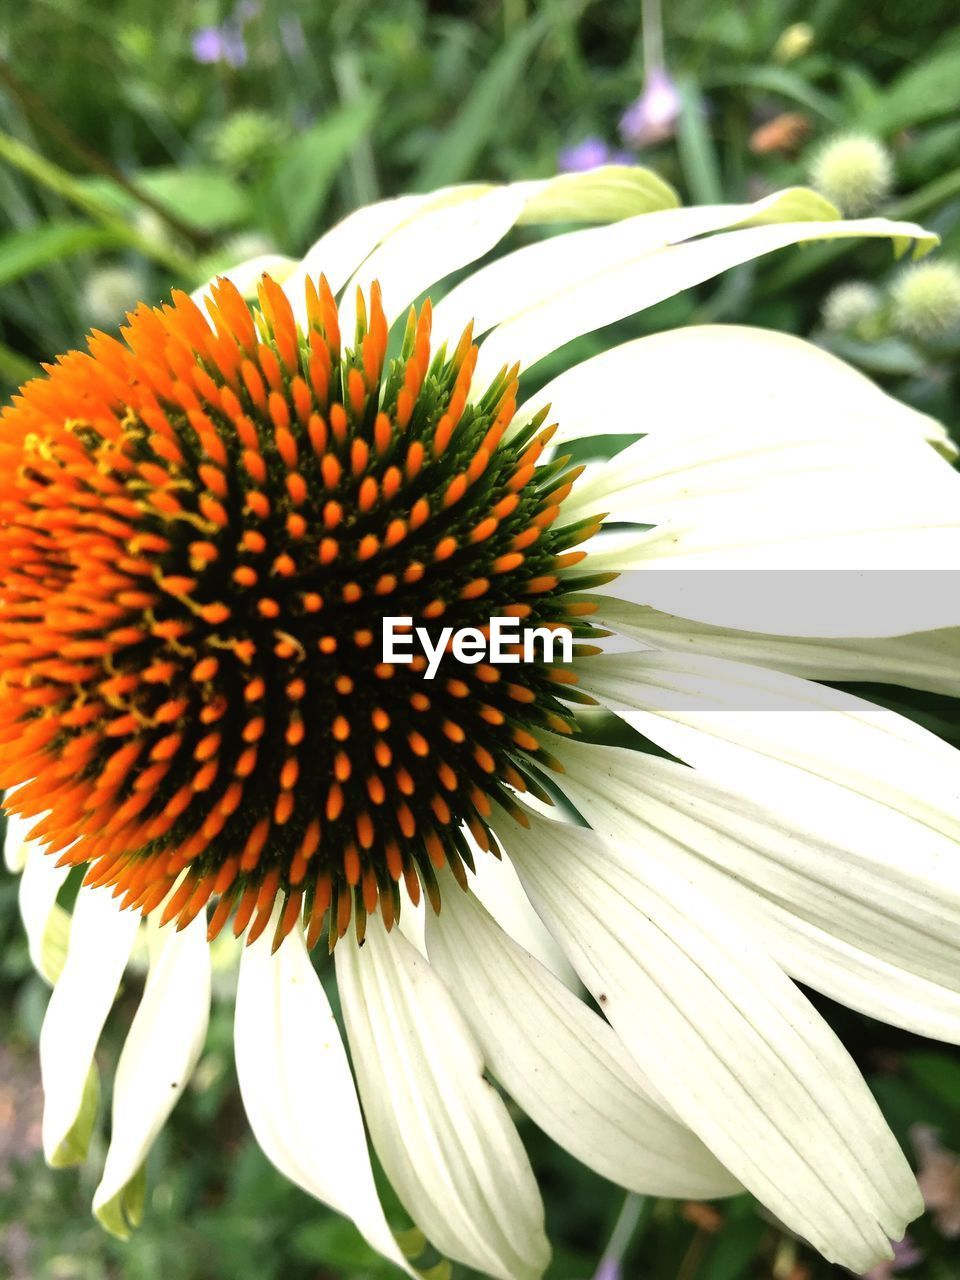 flower, fragility, beauty in nature, day, focus on foreground, petal, nature, freshness, flower head, growth, outdoors, close-up, no people, coneflower, plant, blooming, eastern purple coneflower